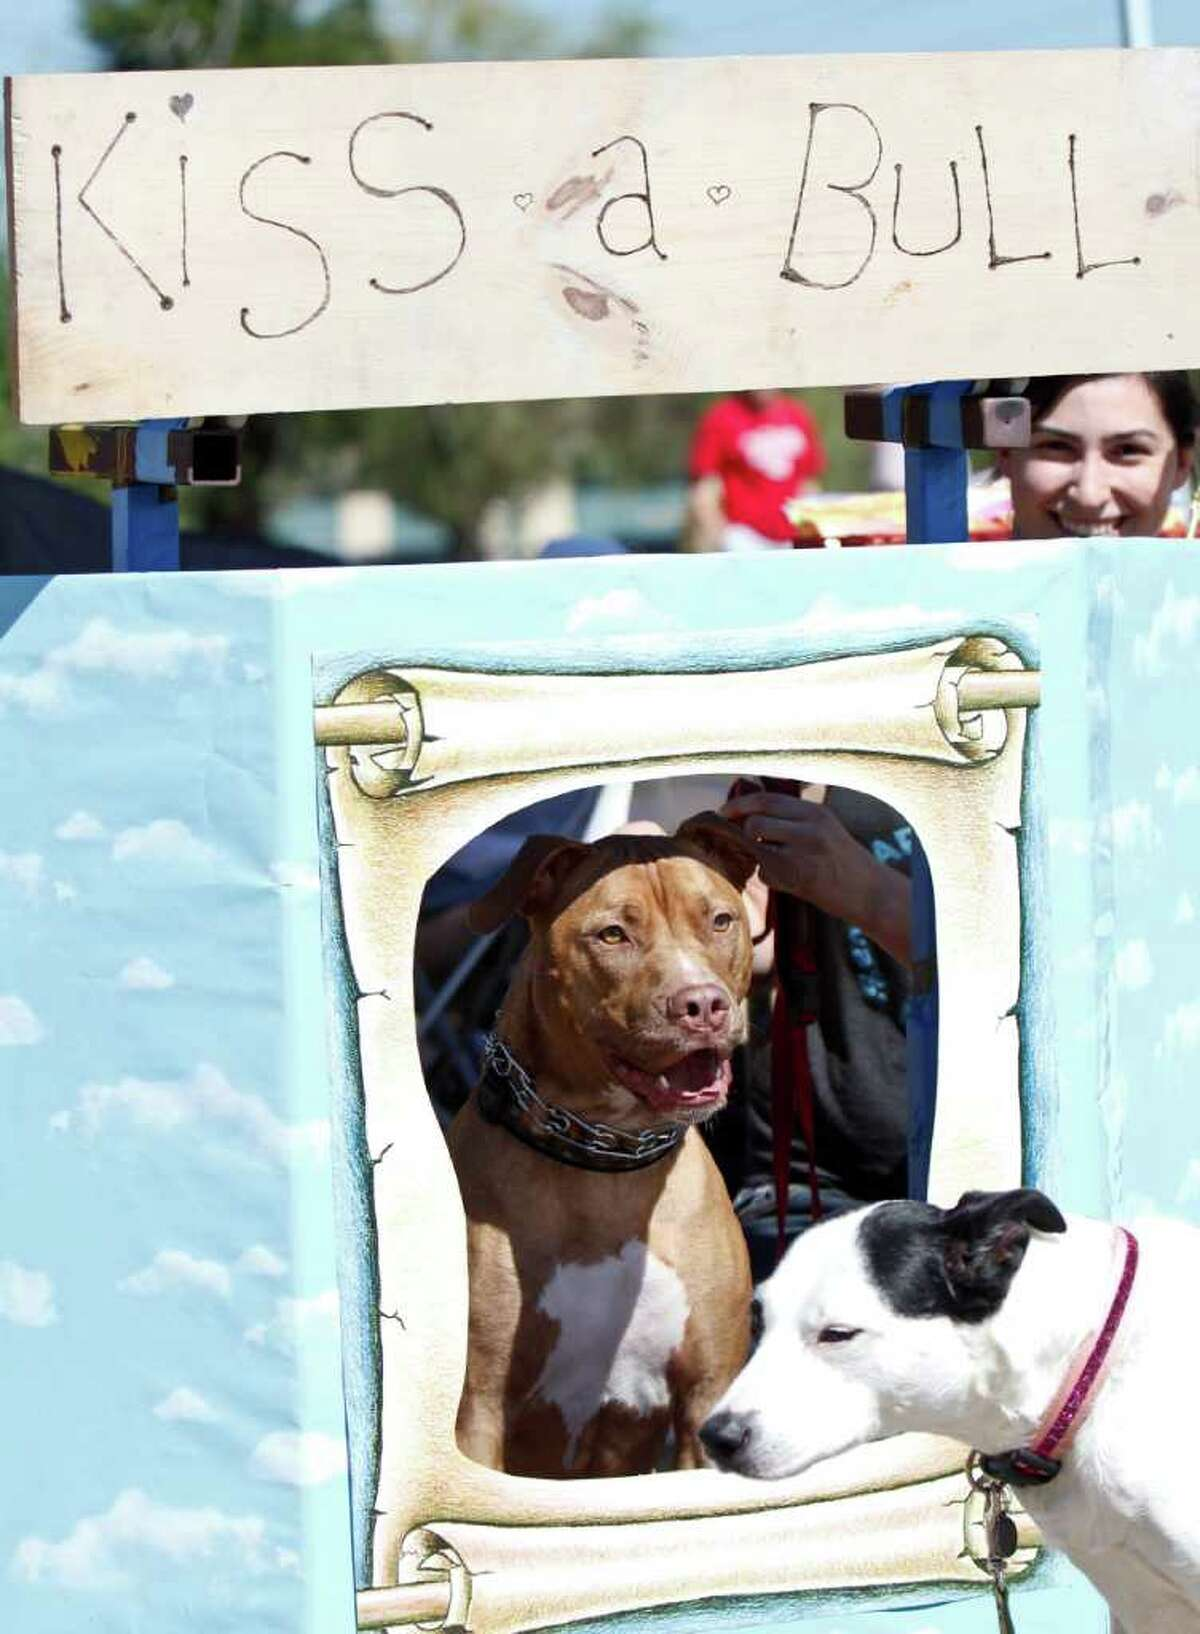 A pit bull poses in the kissing booth.